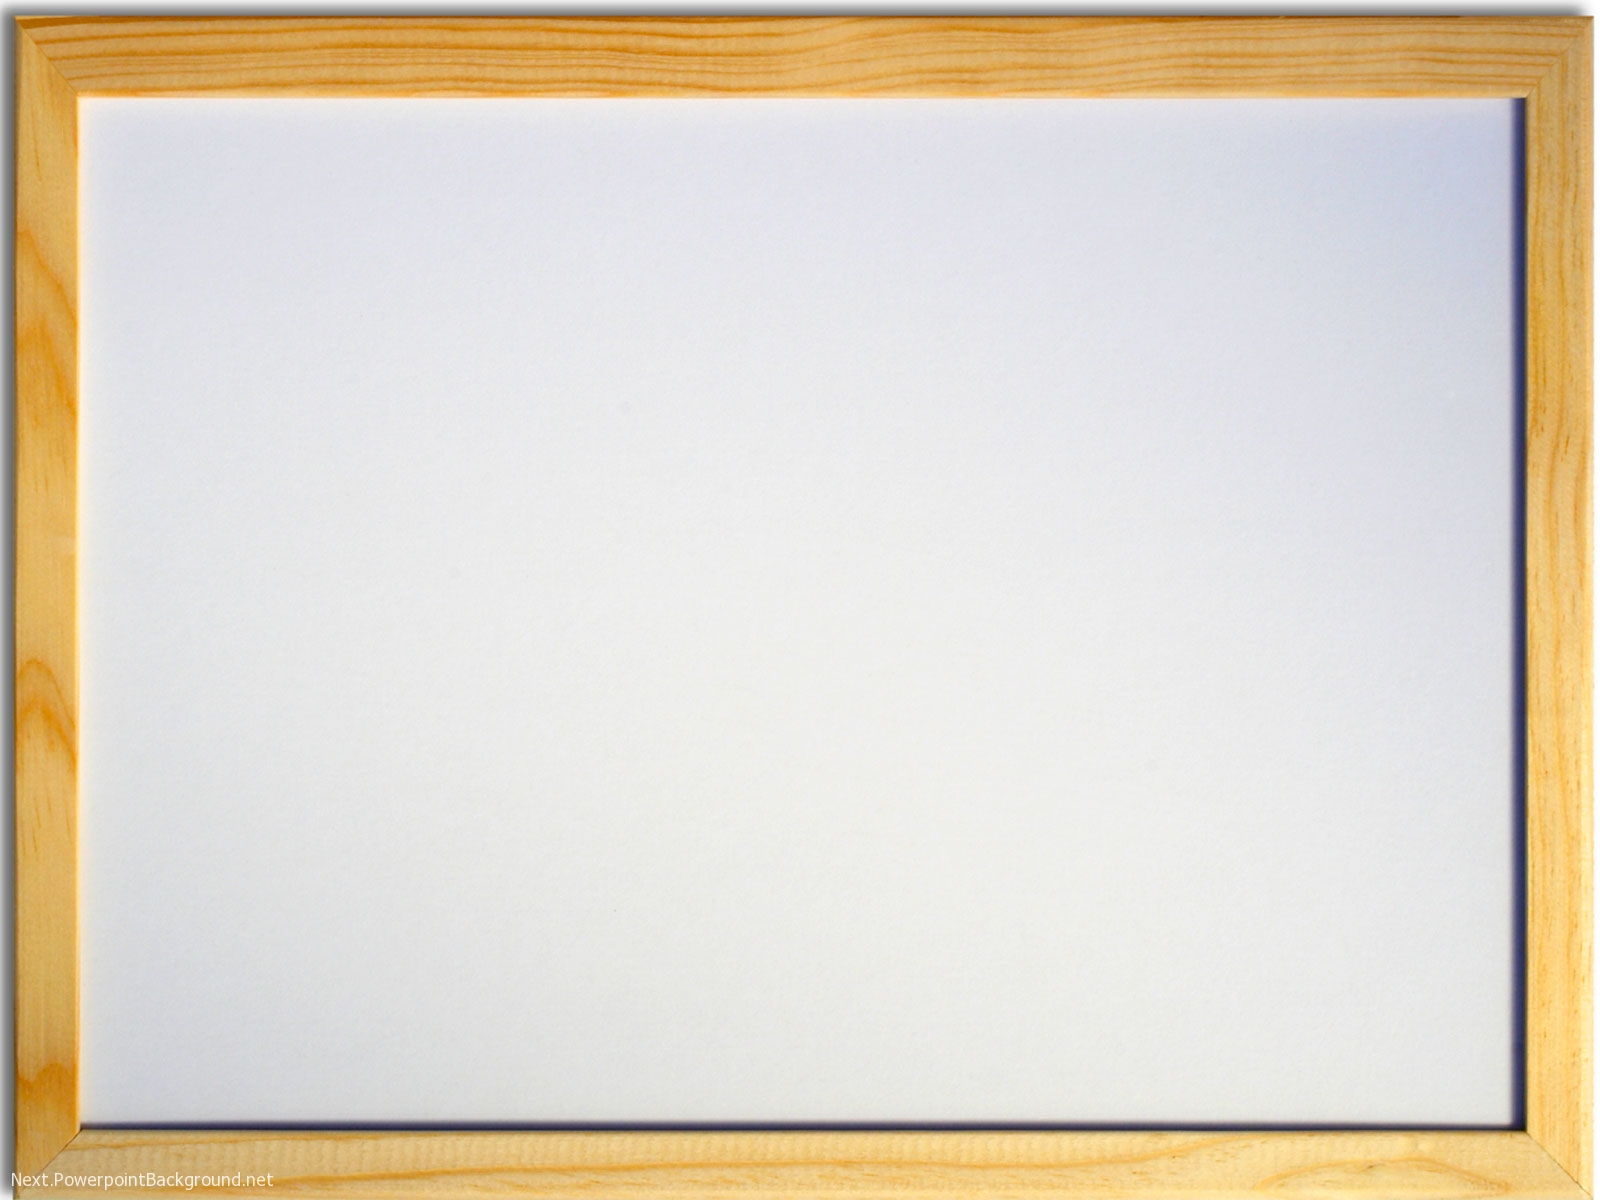 white-board-with-wood-frame-powerpoint-background